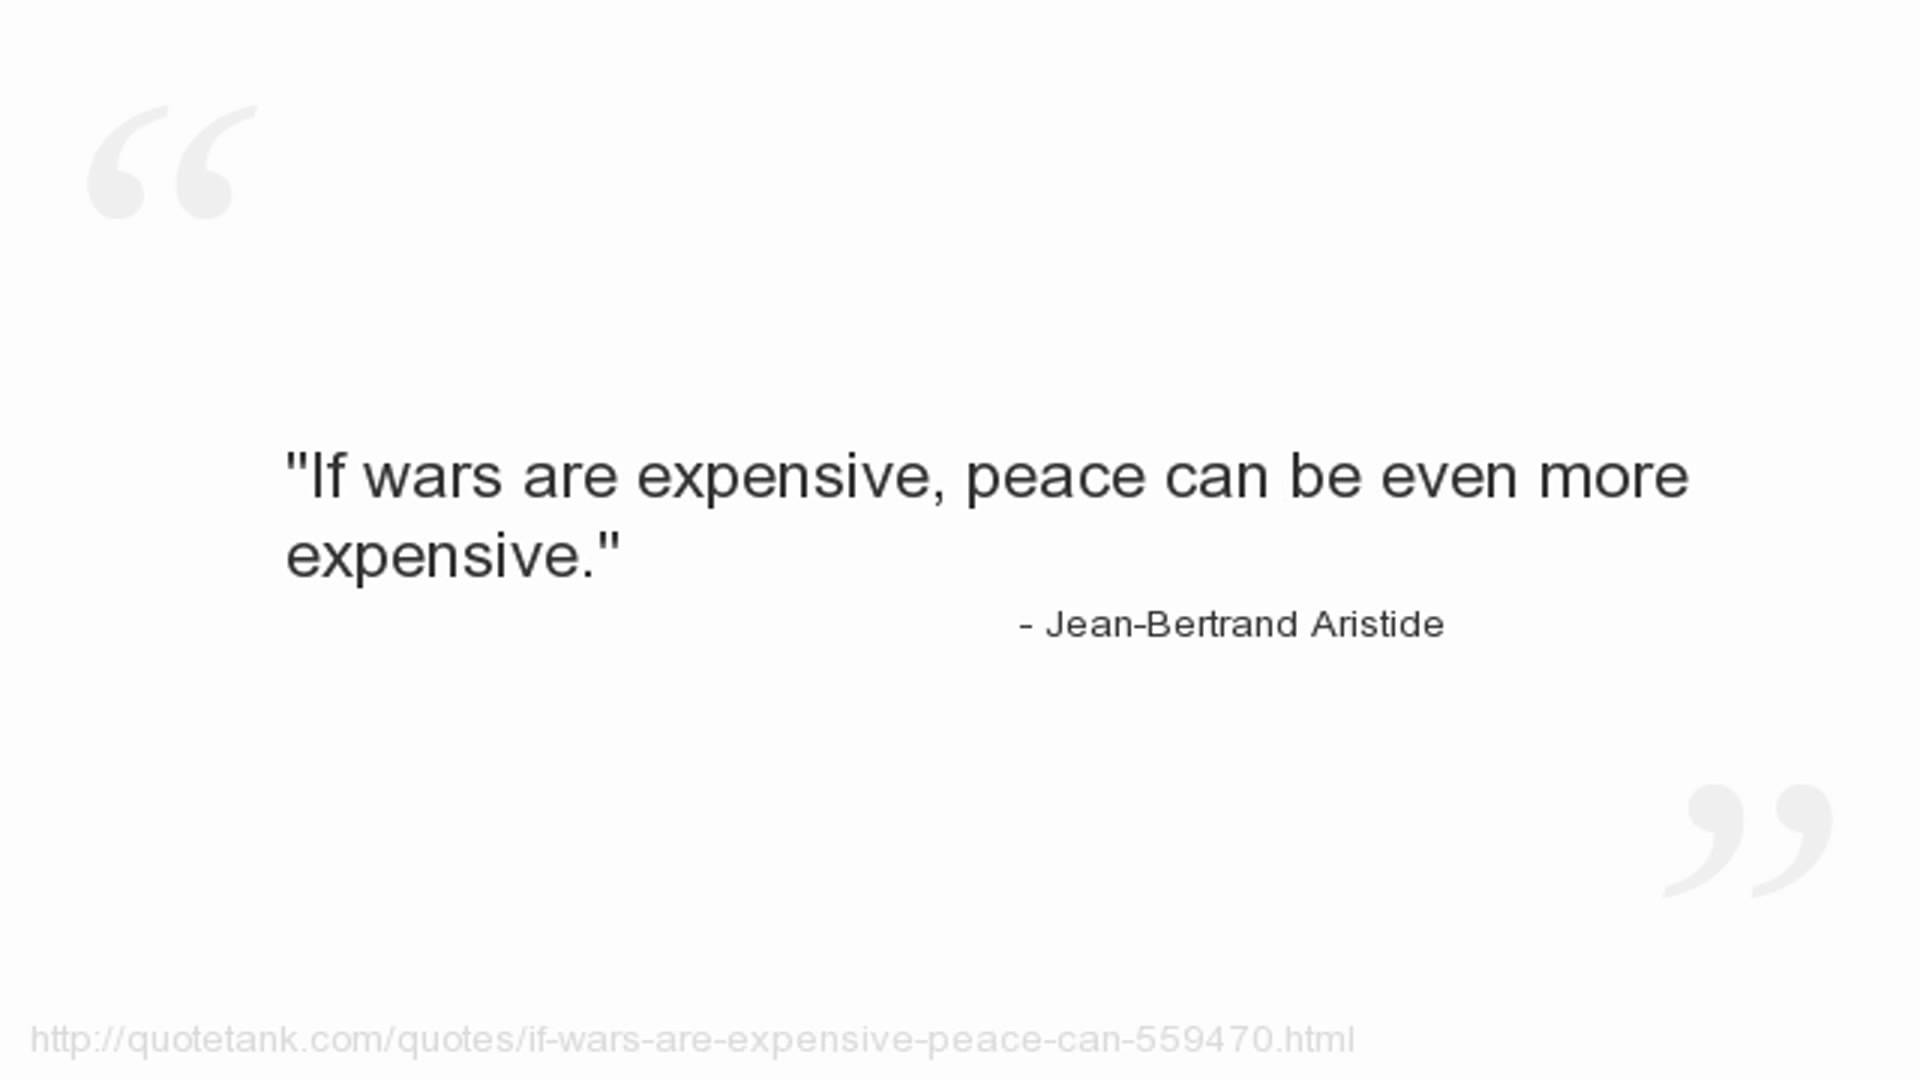 Jean-Bertrand Aristide's quote #5